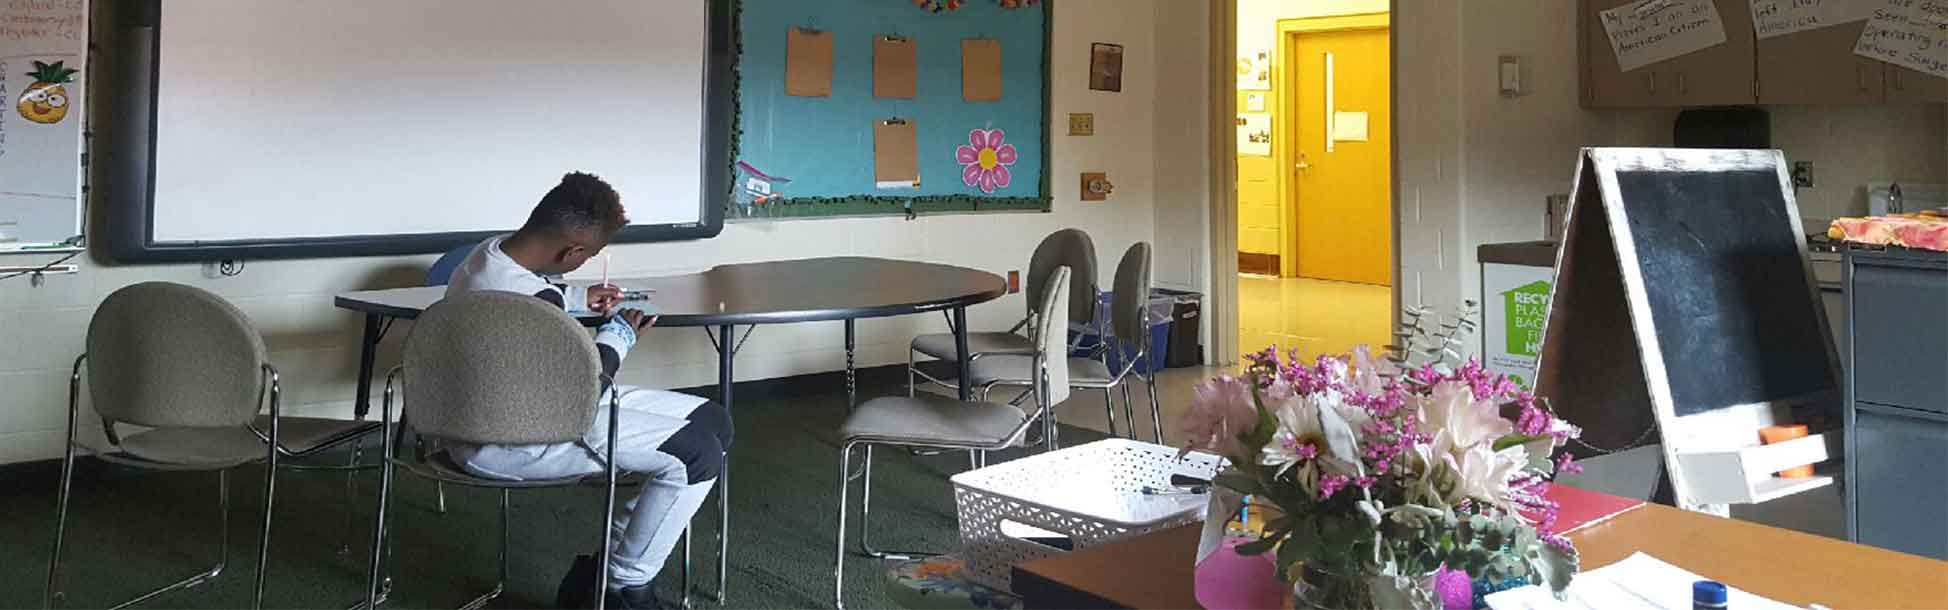 Daylighting Changed My Classroom for the Better– And It Can Help You, Too